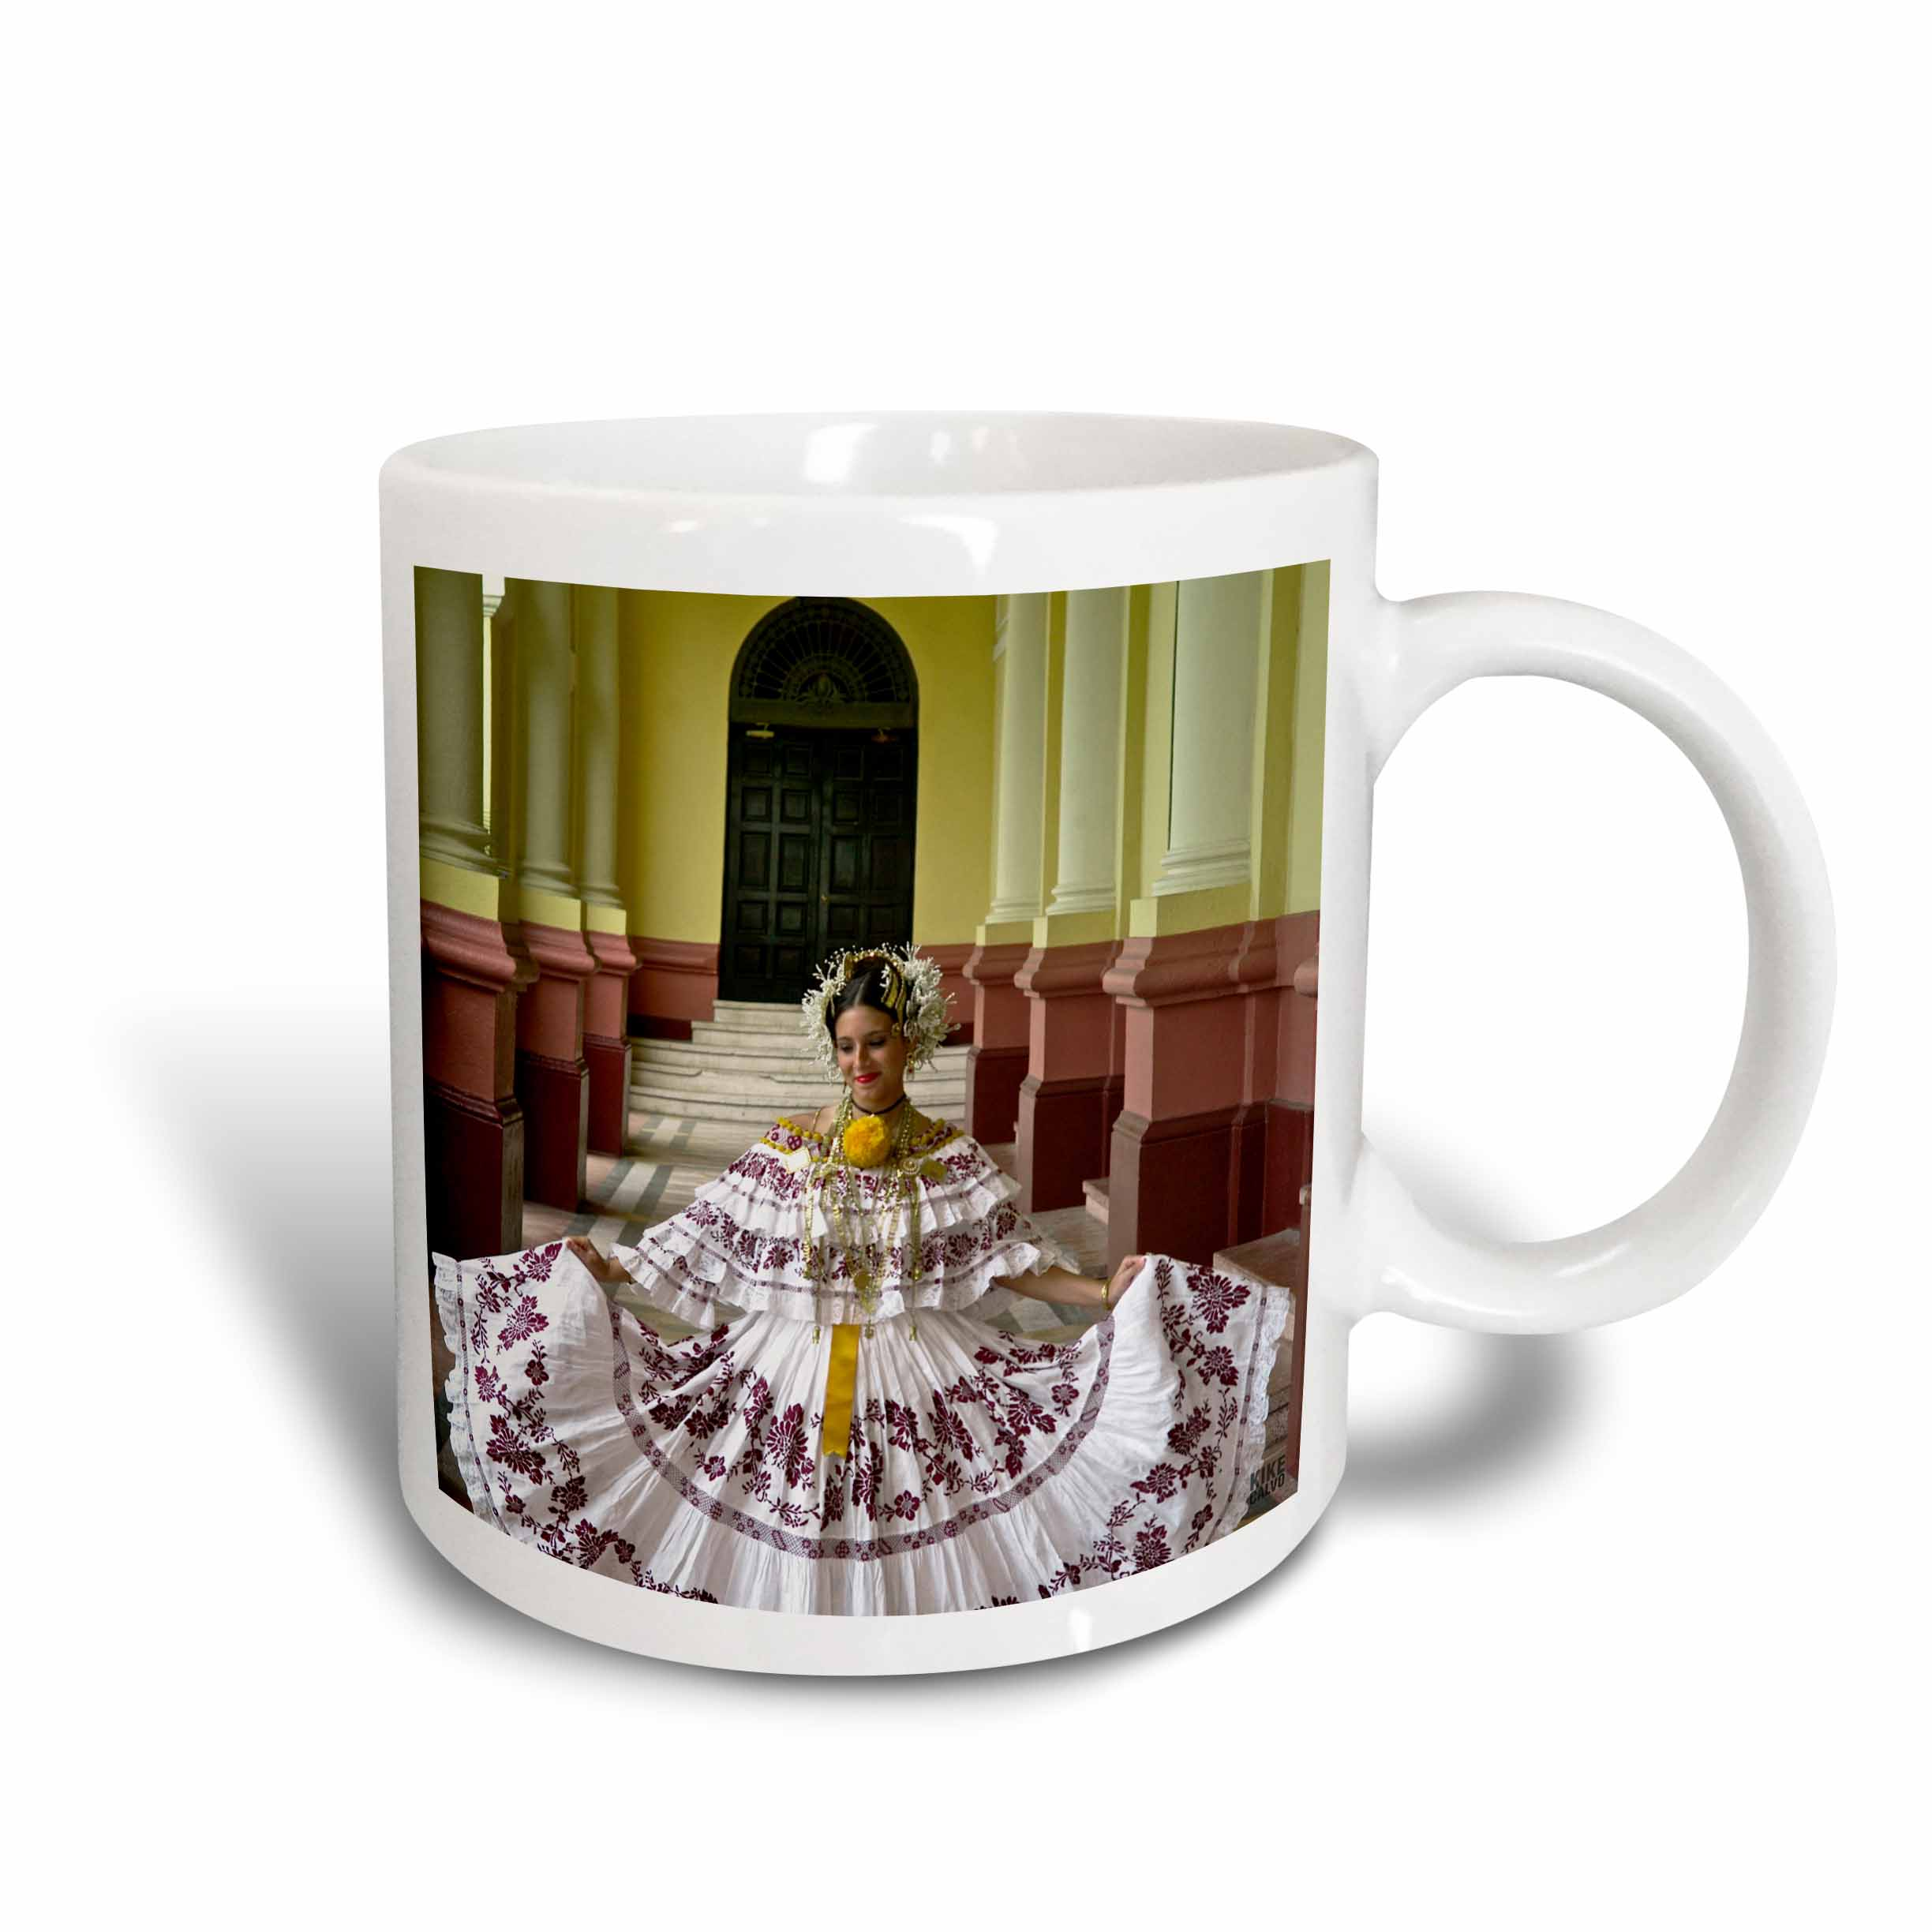 bd823d890 3dRose Panamanian woman in her twenties dressed up with the traditional  Pollera, Ceramic Mug, 11-ounce